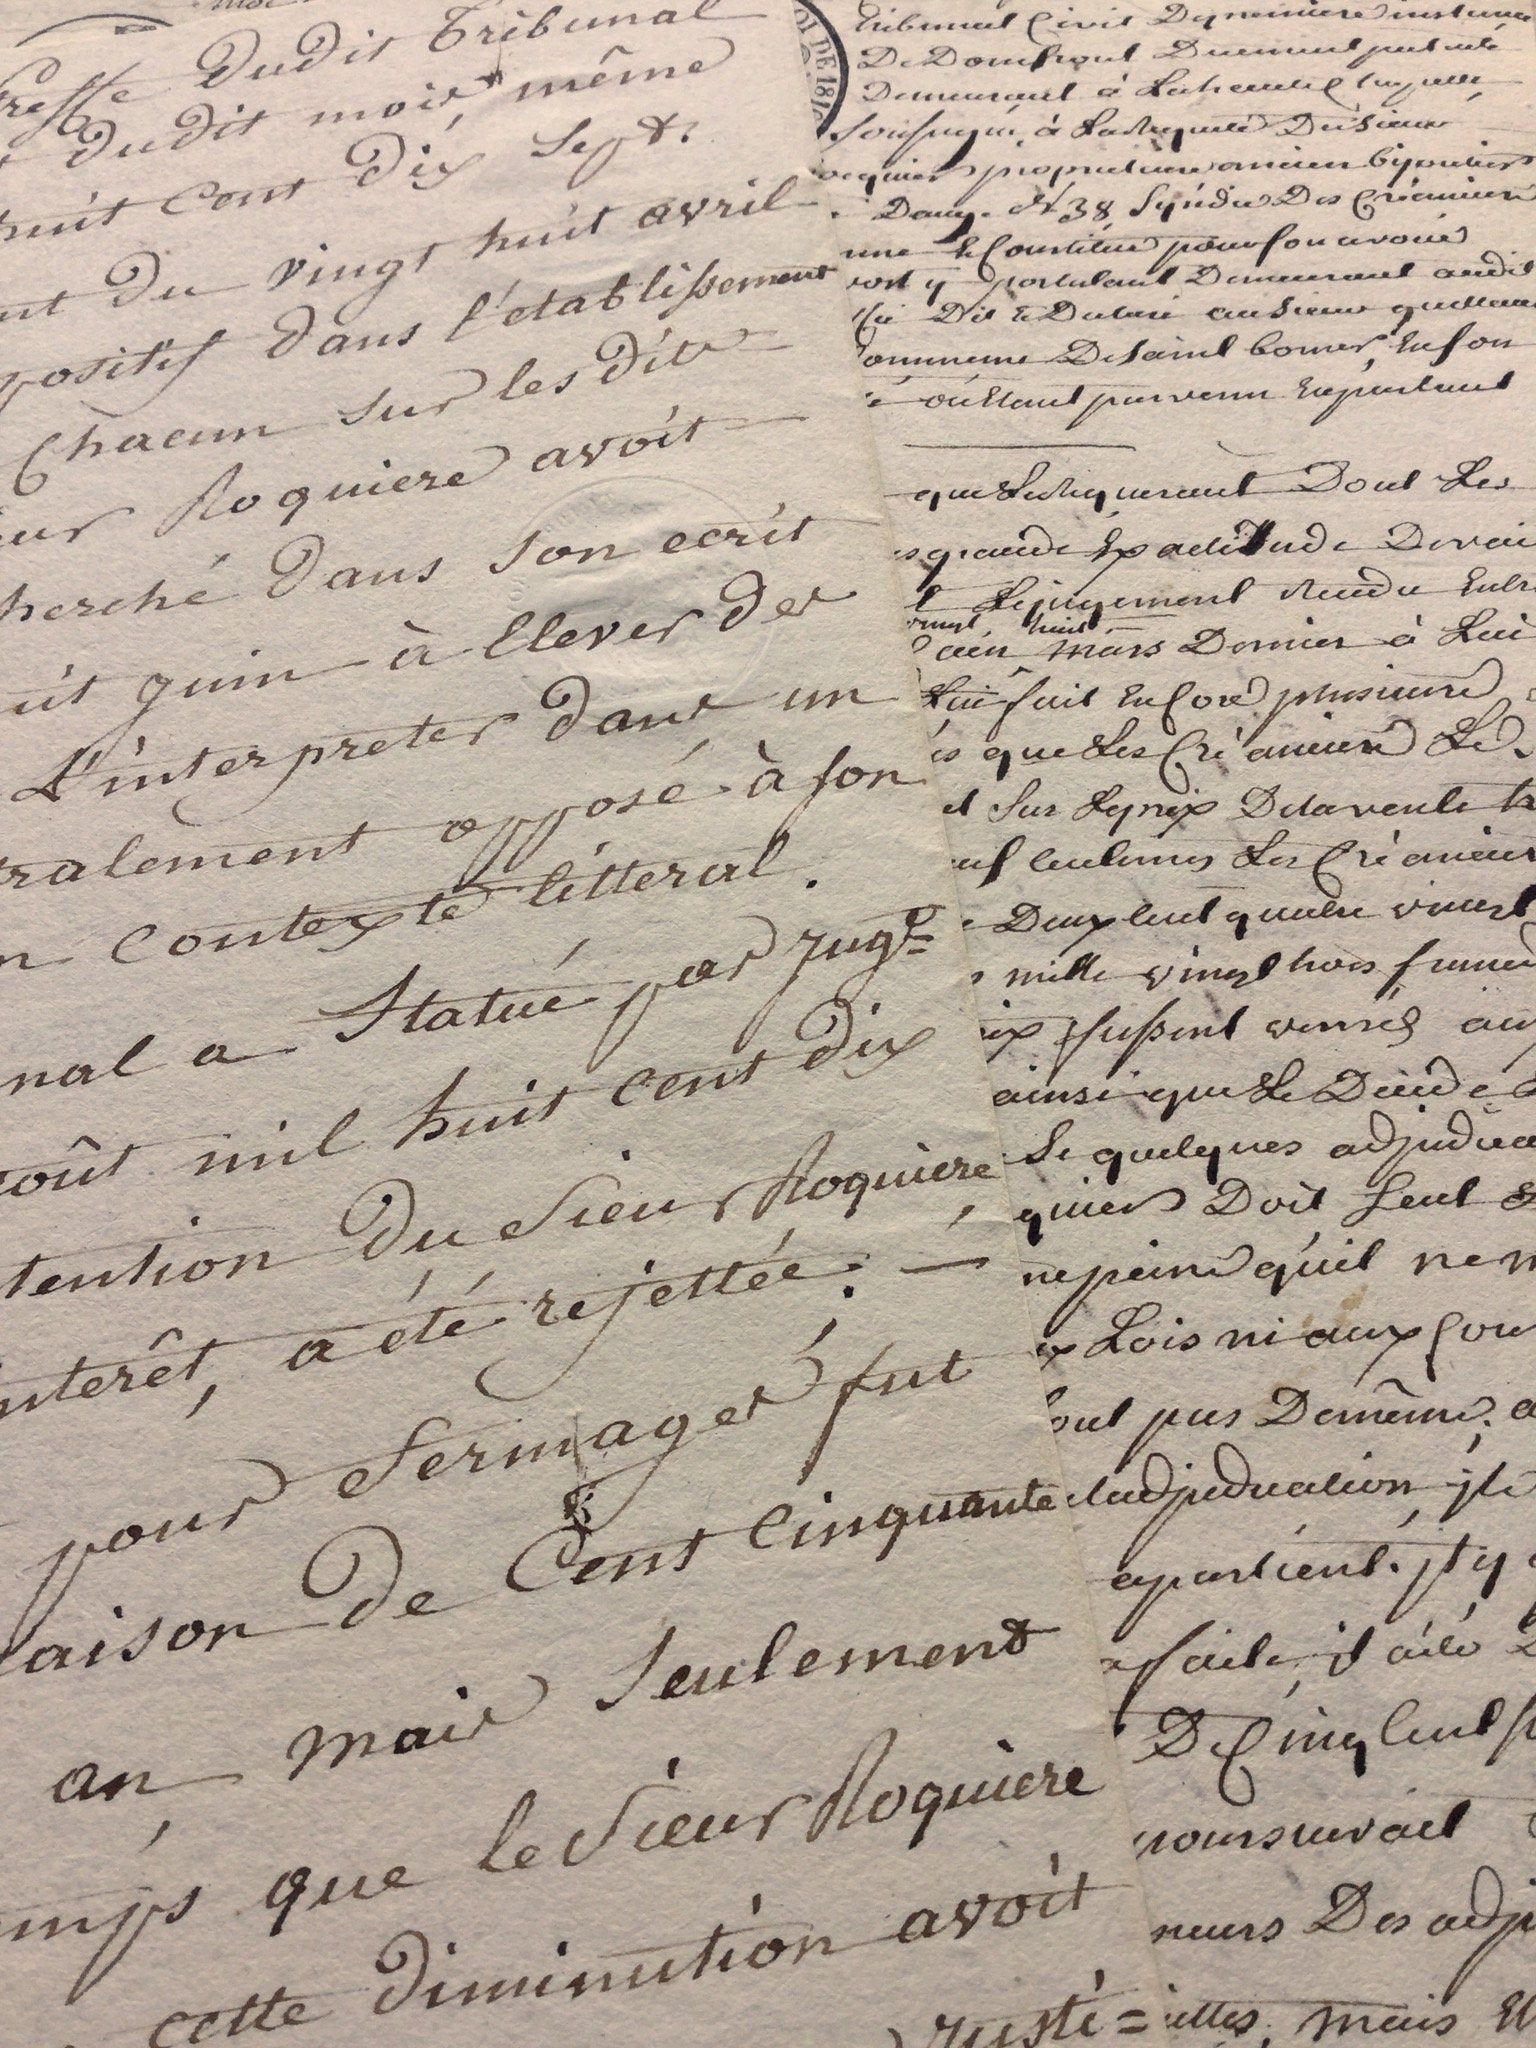 1820s Vintage French Script Ephemera Scripts Paper Antique French Documents Papers 1800 S Hand Cursive Writing Handwritten Calligraphy Cursive Writing Cursive French Script